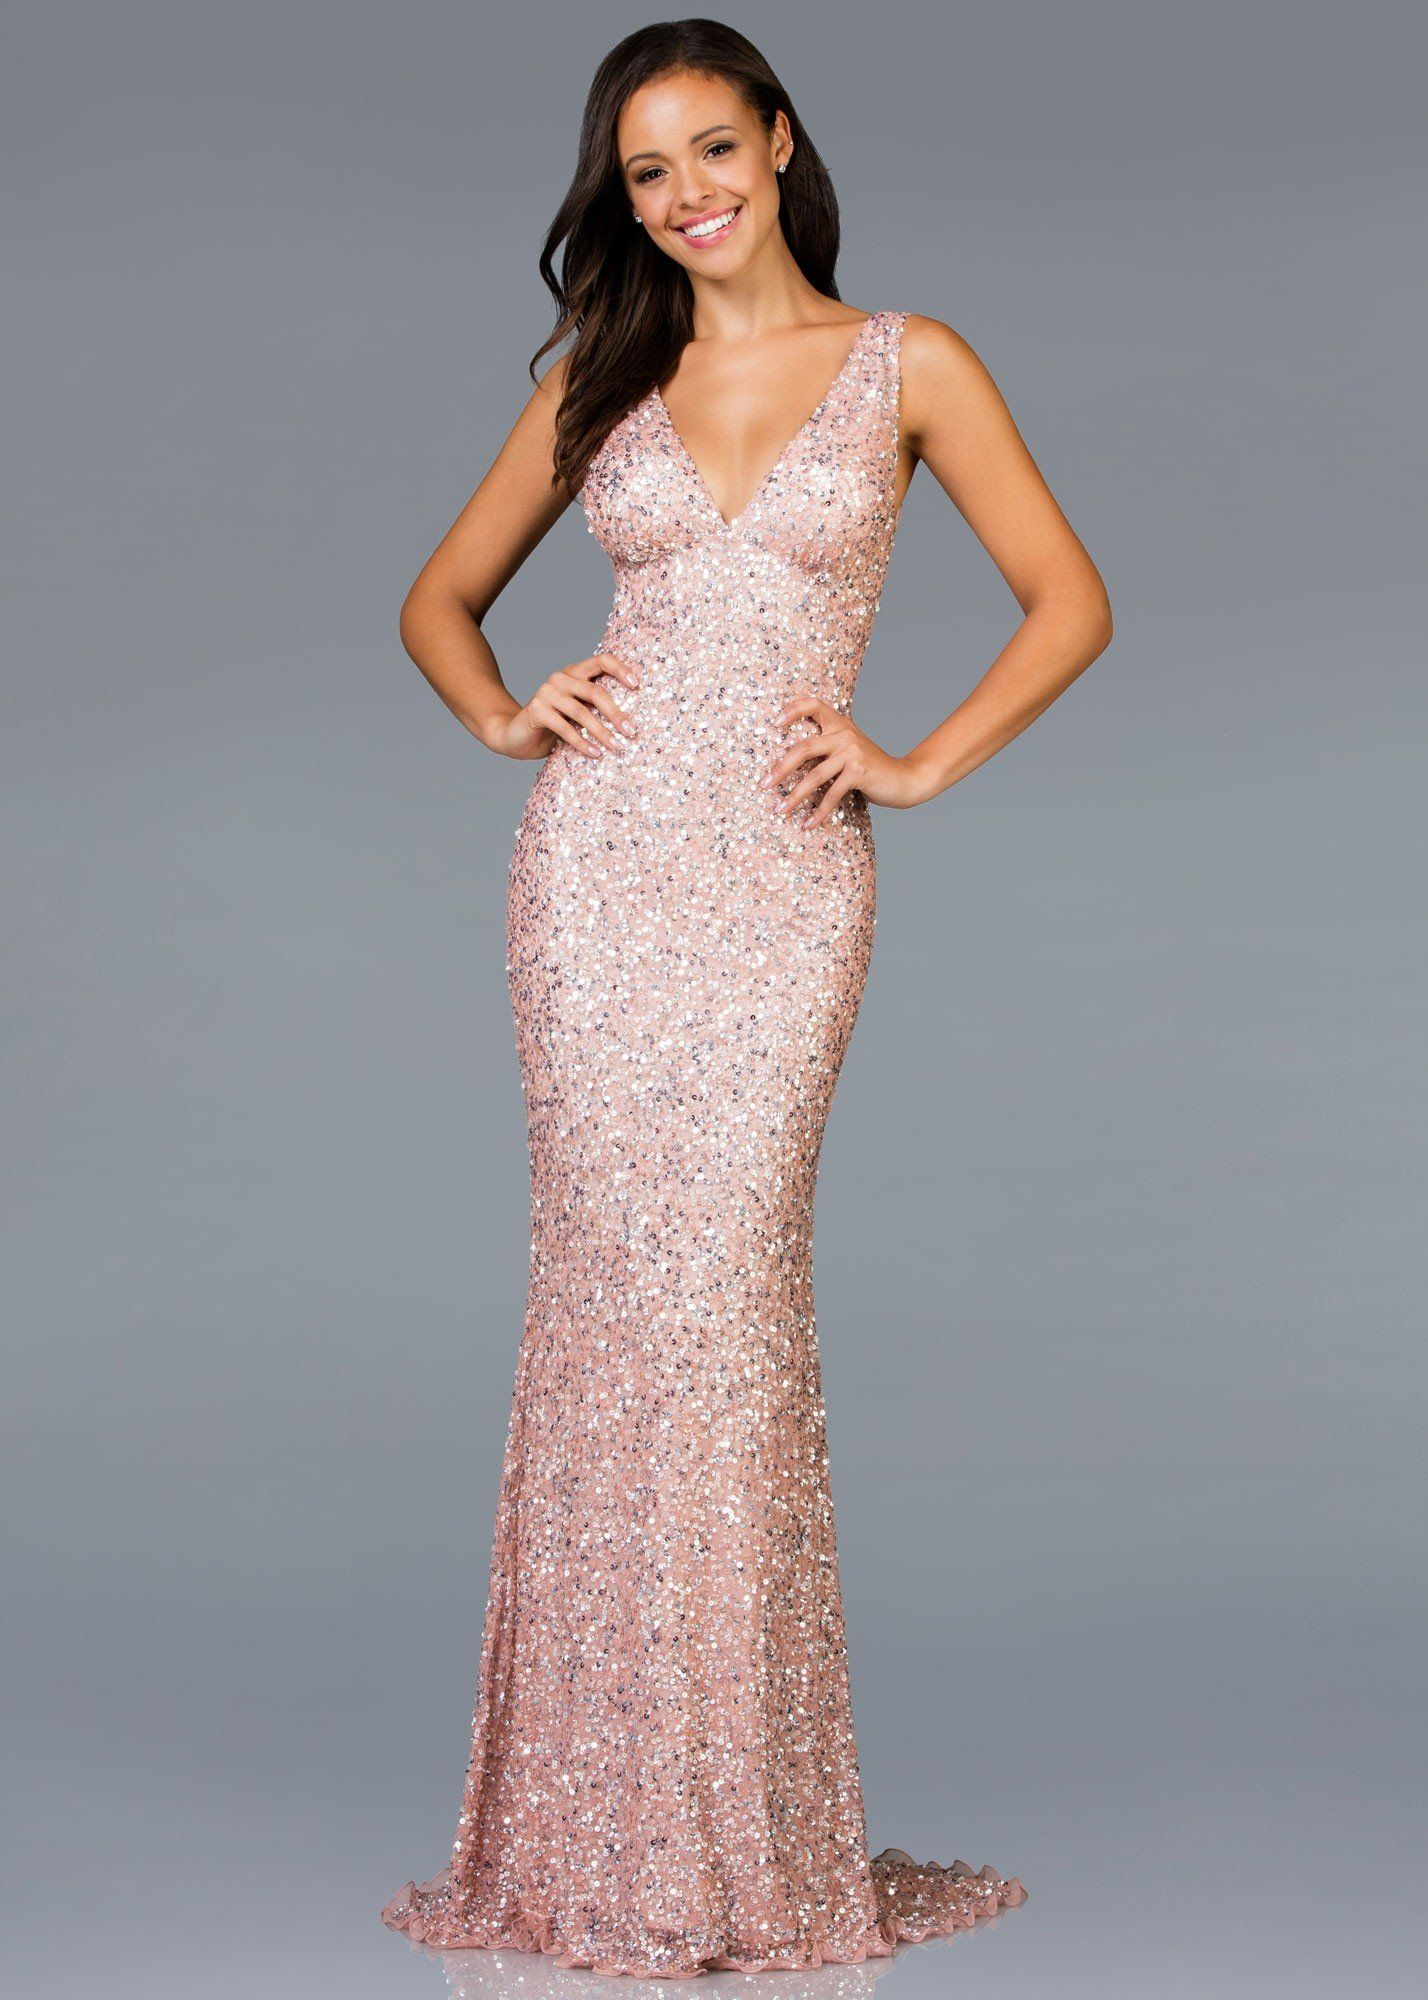 dab0dbc91da Scala 48883 Open Back Sequin Gown in 2019